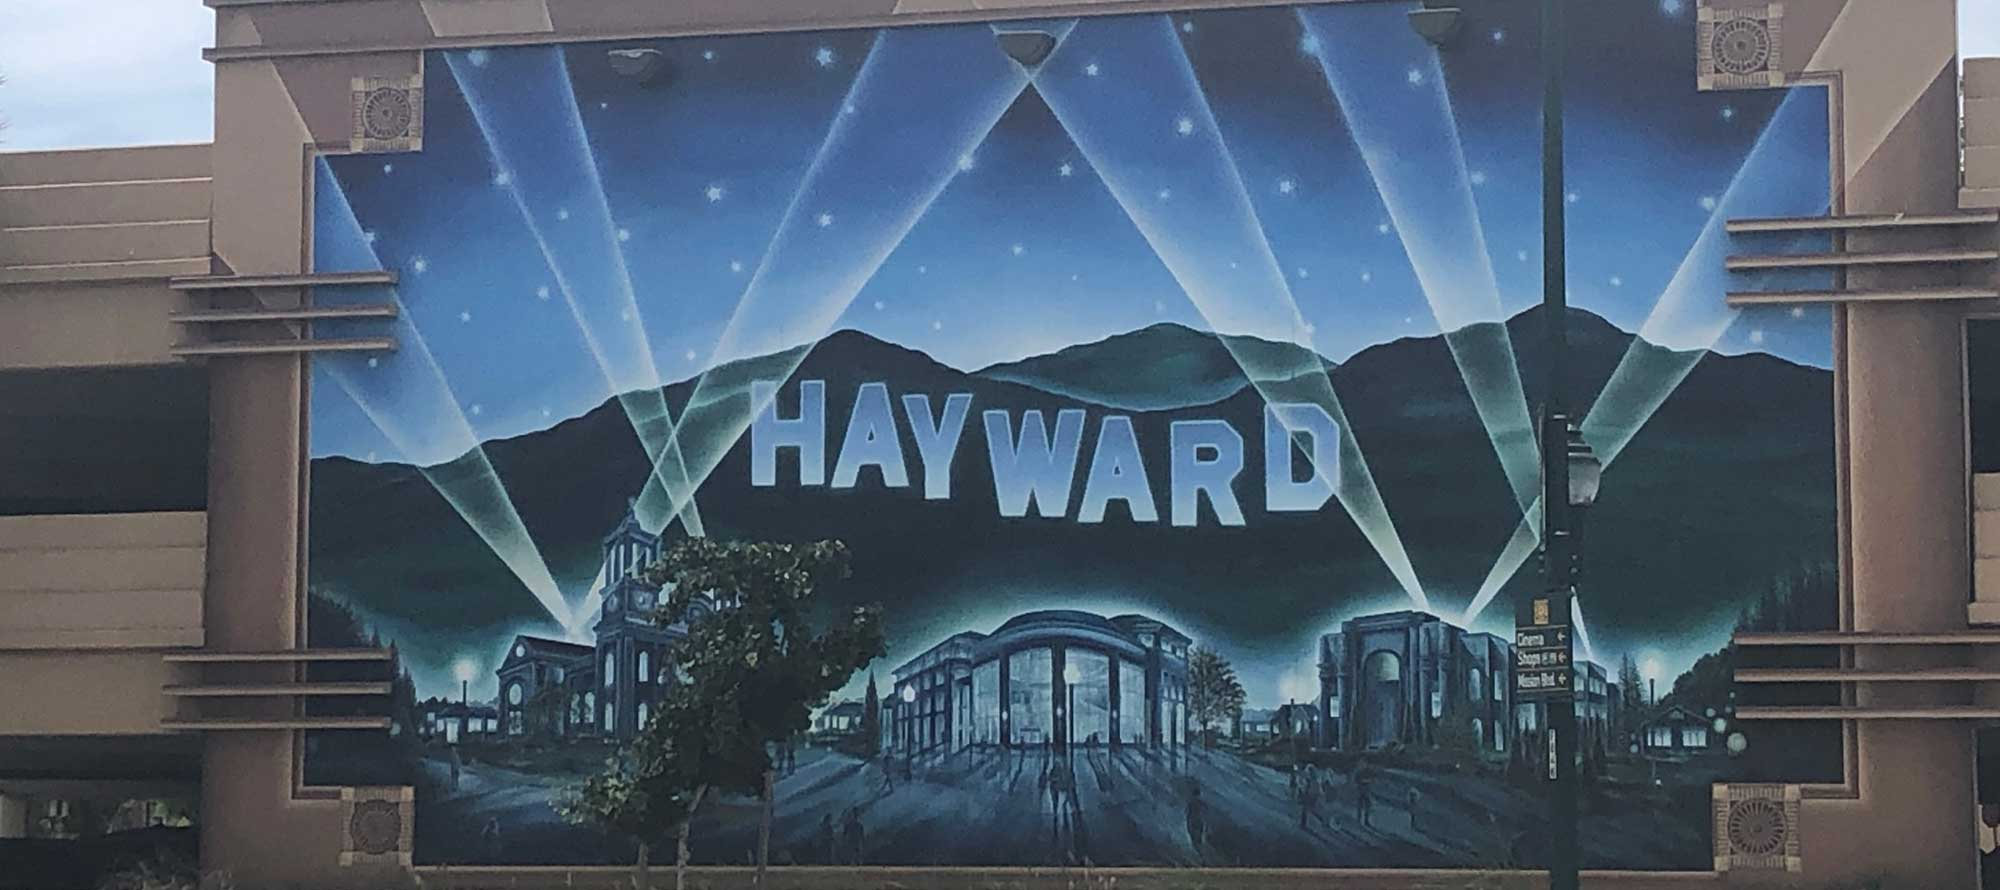 Hayward painting on building